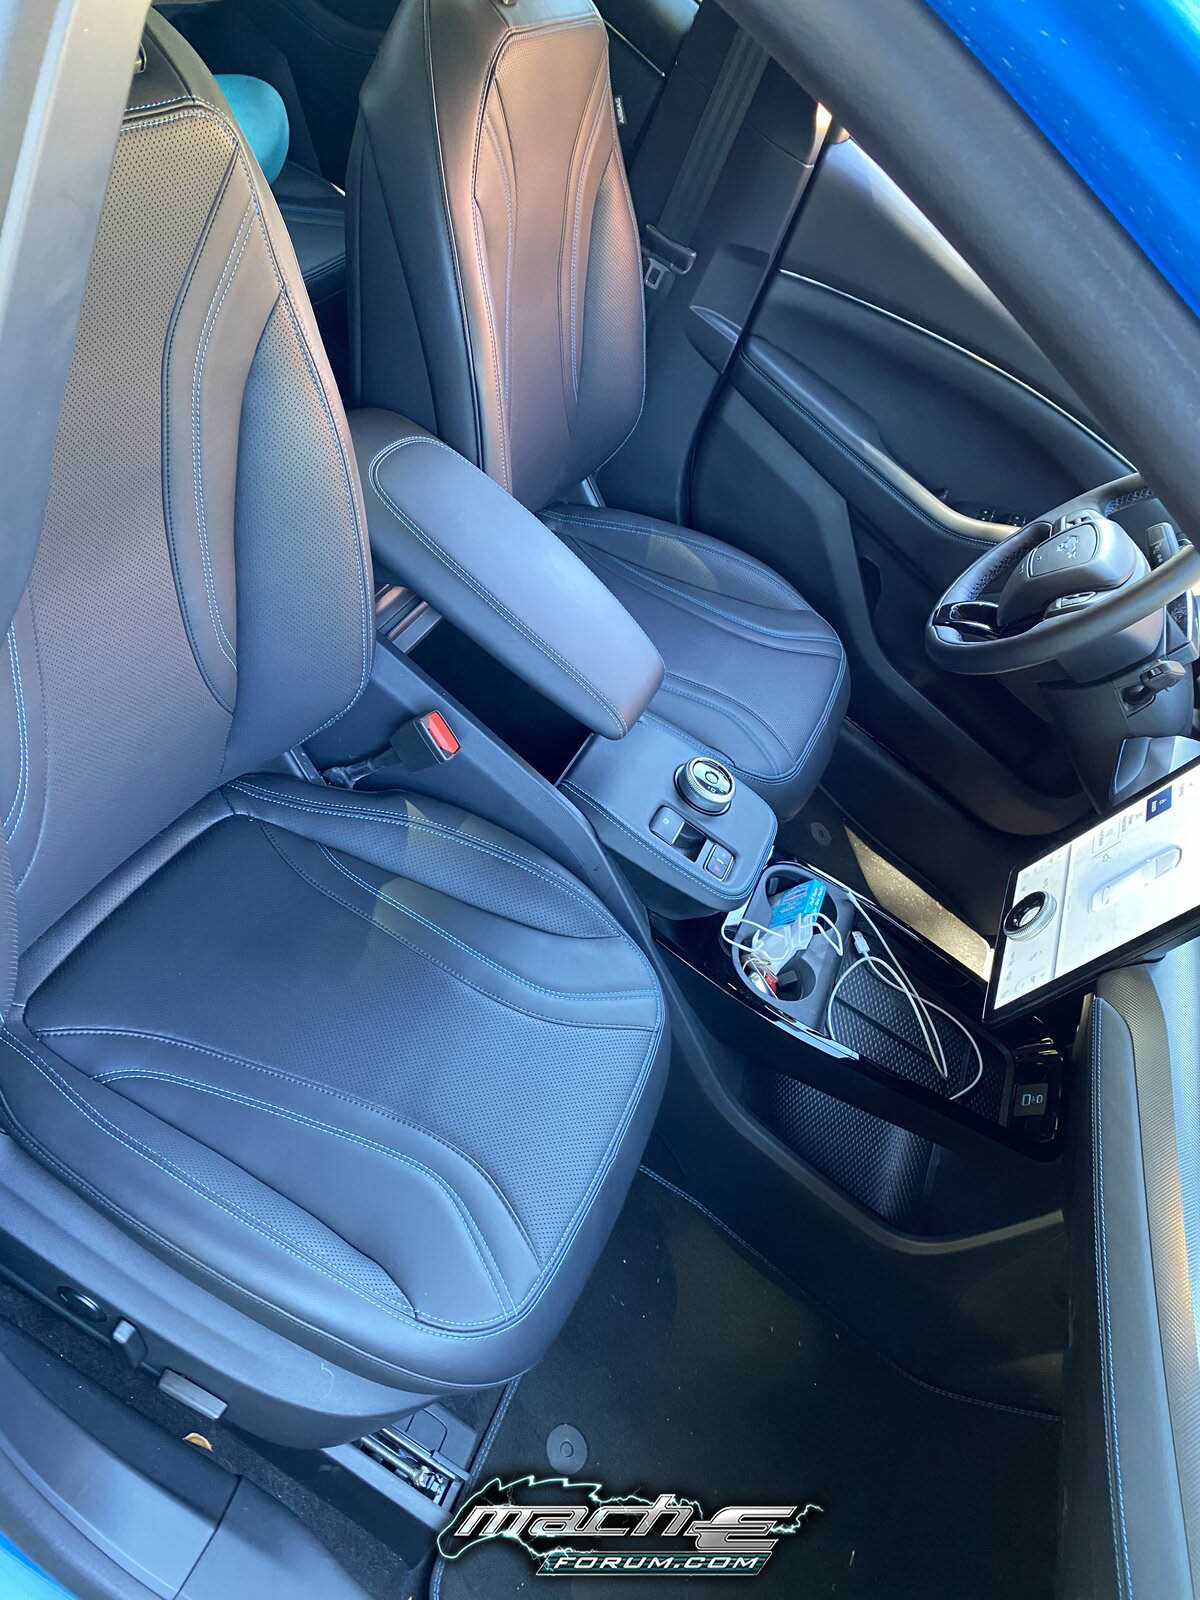 Mach-E First Edition Interior Pic 2.jpg